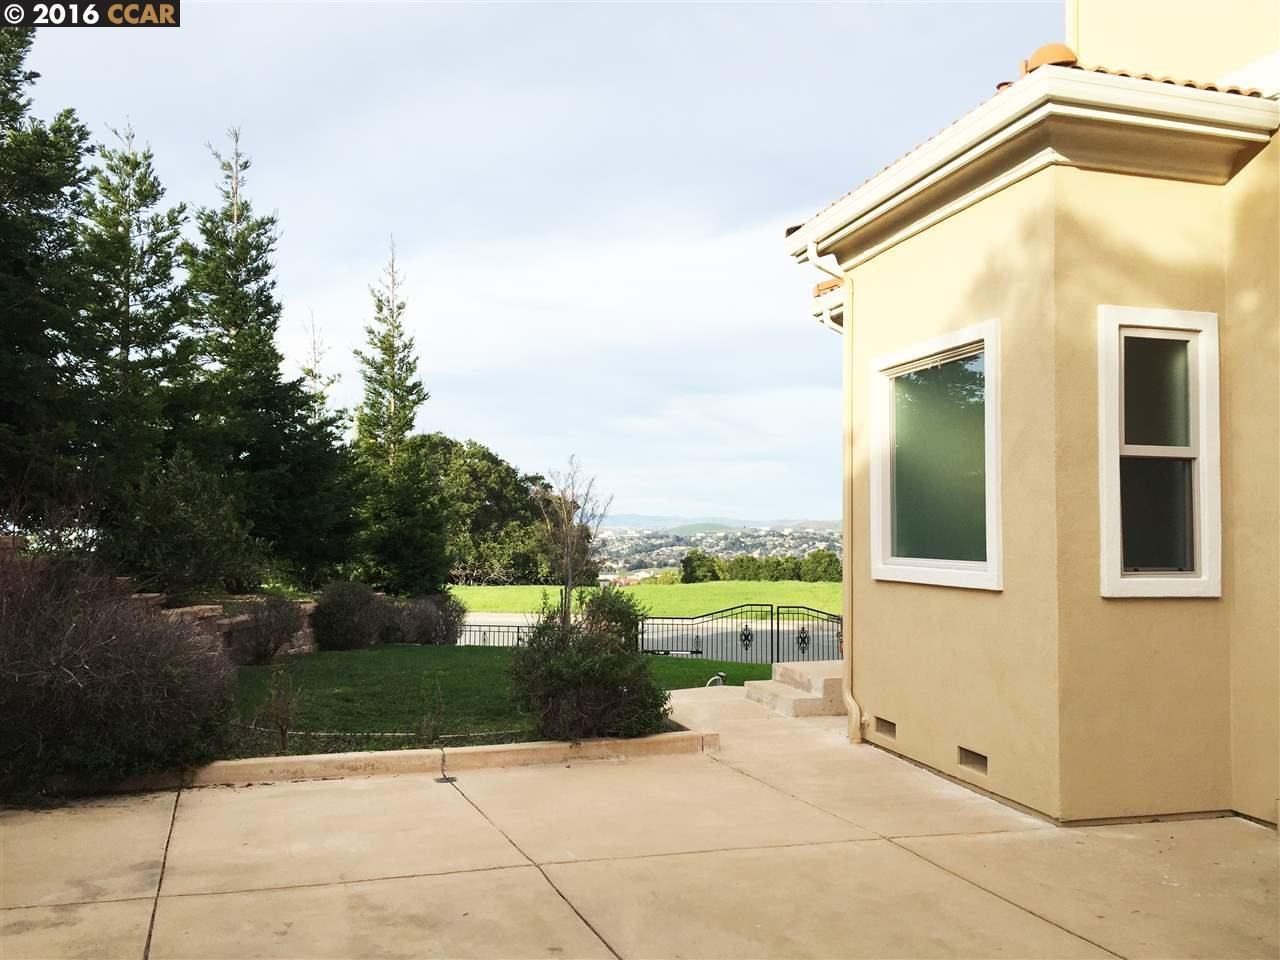 Additional photo for property listing at 1026 TURQUOISE Drive  Hercules, California 94547 United States